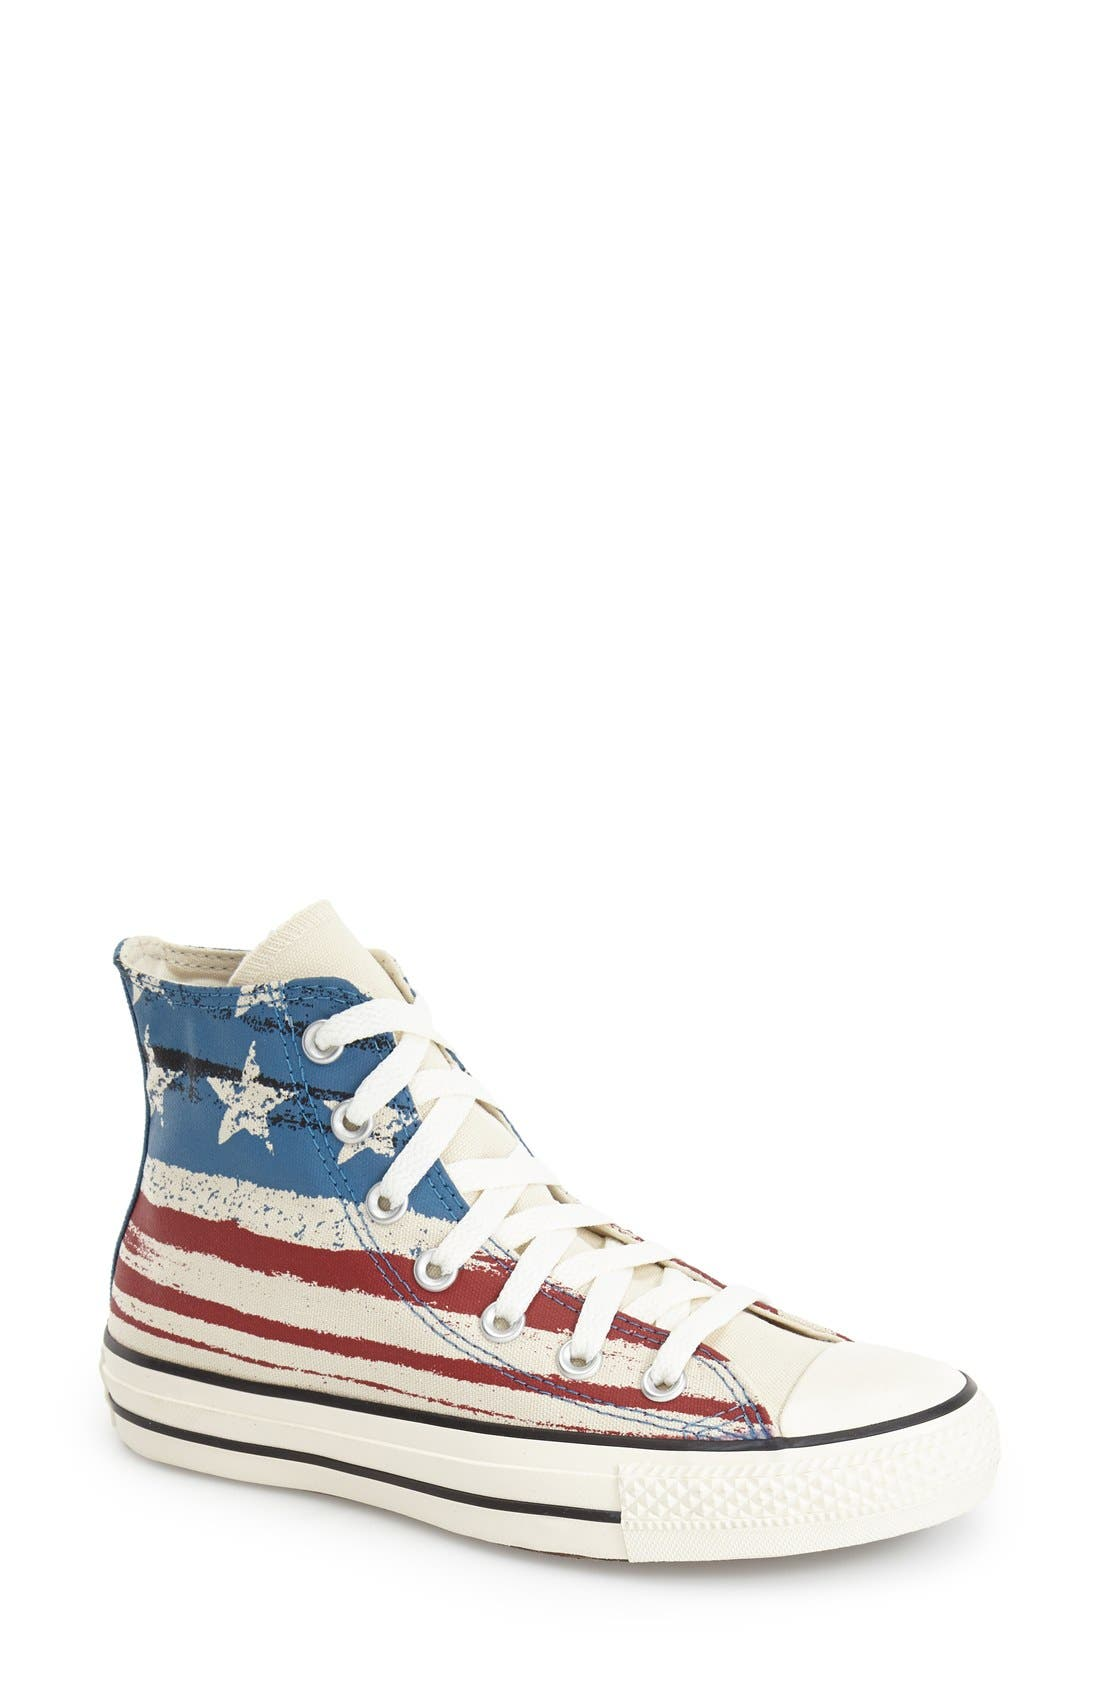 Alternate Image 1 Selected - Converse Chuck Taylor® Flag Print High Top Sneaker (Women)